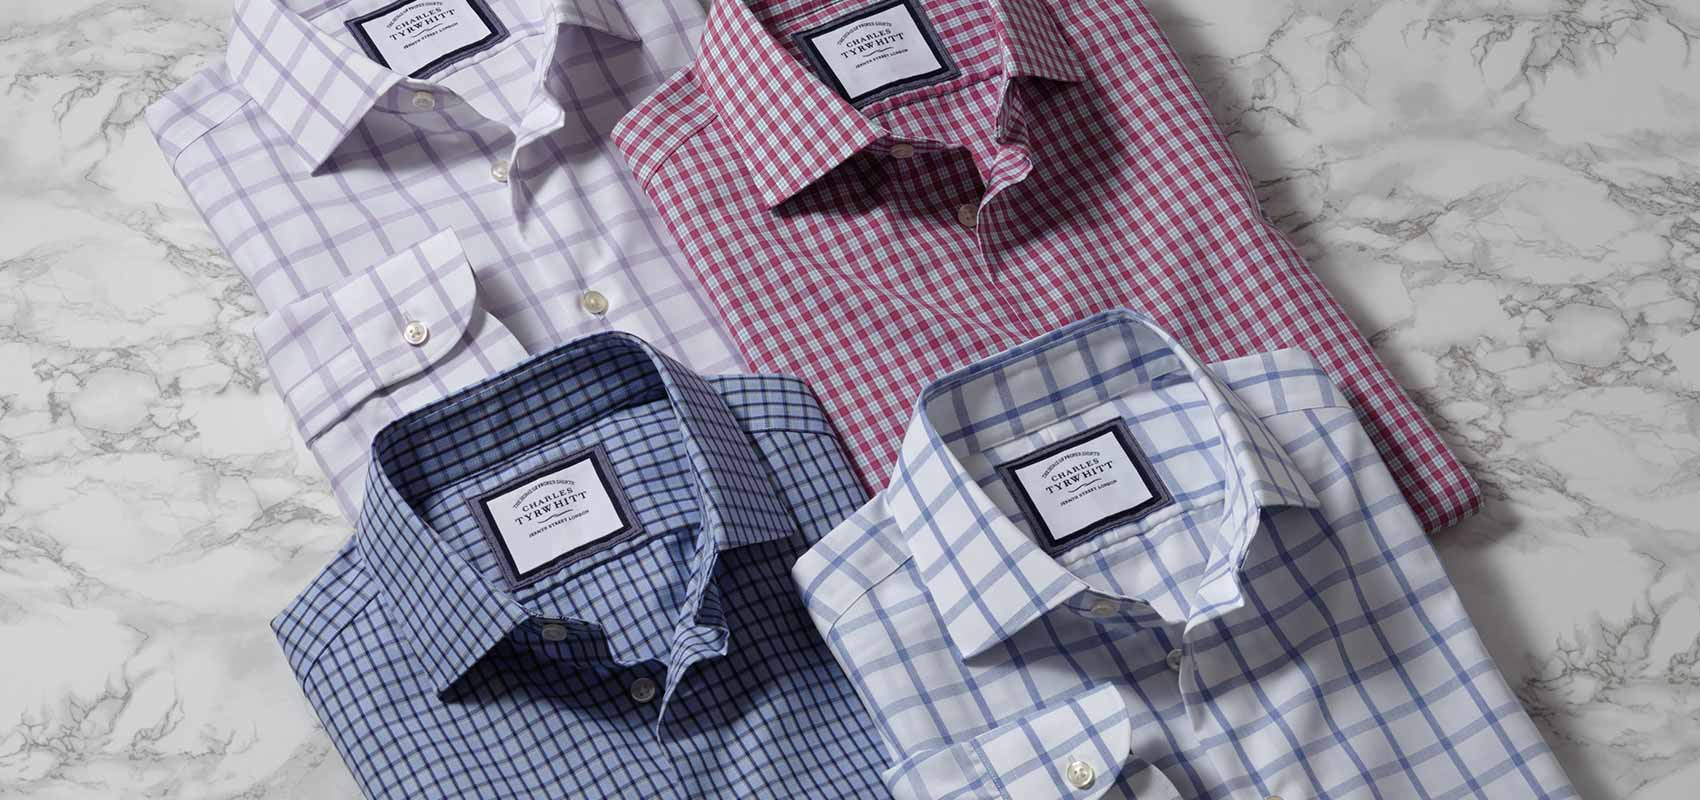 Charles Tyrwhitt business-casual shirts